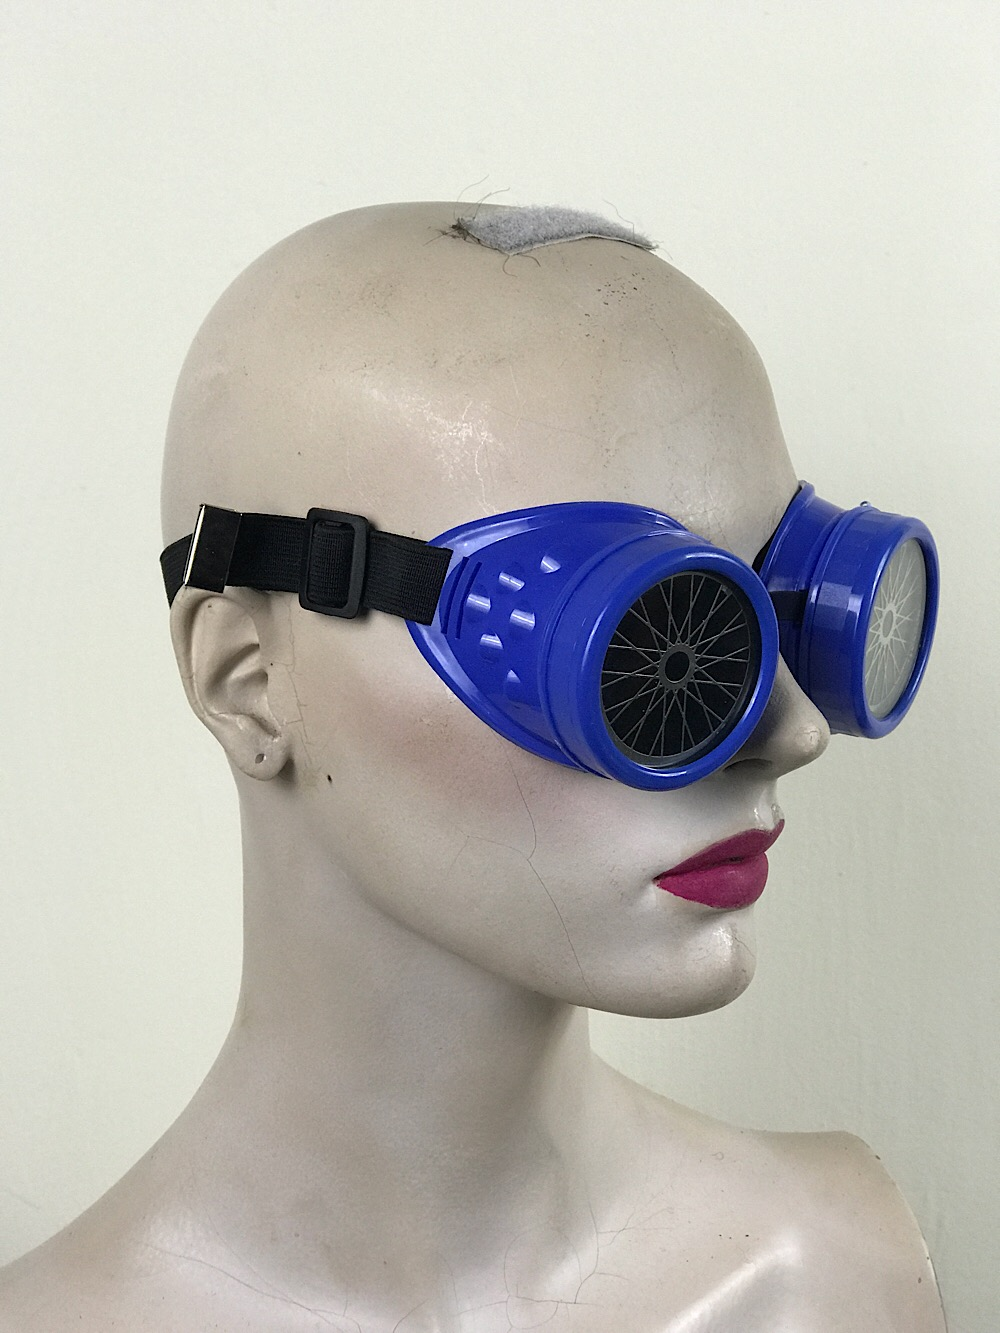 steampunk goggles stainless steel lens blue plastic cups BICYCLE